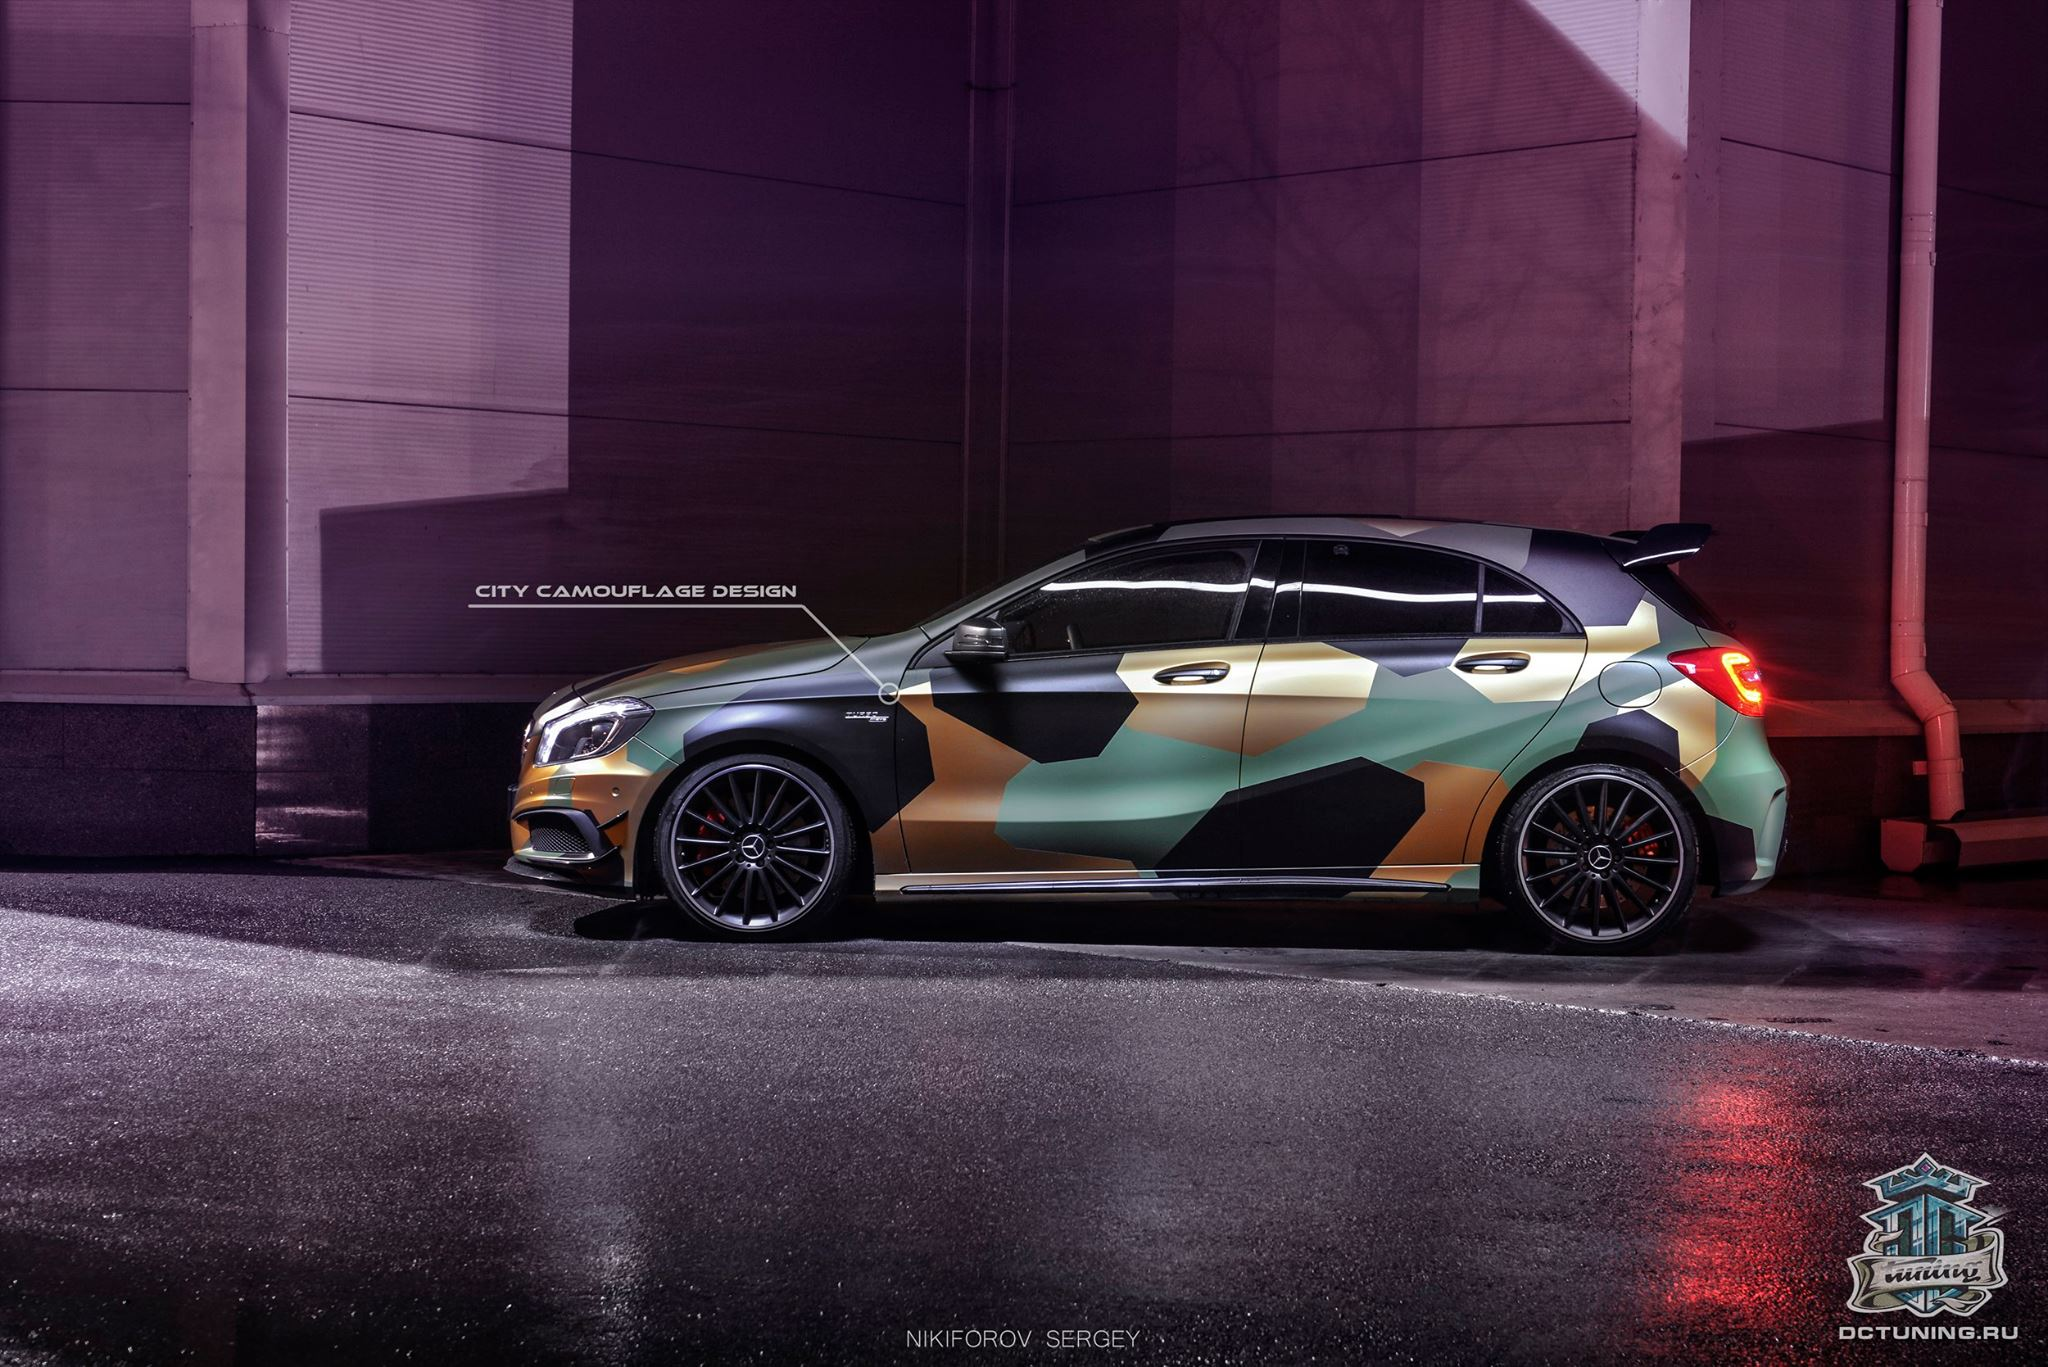 A45 Amg Gets City Camouflage Wrap From Dc Tuning Russia